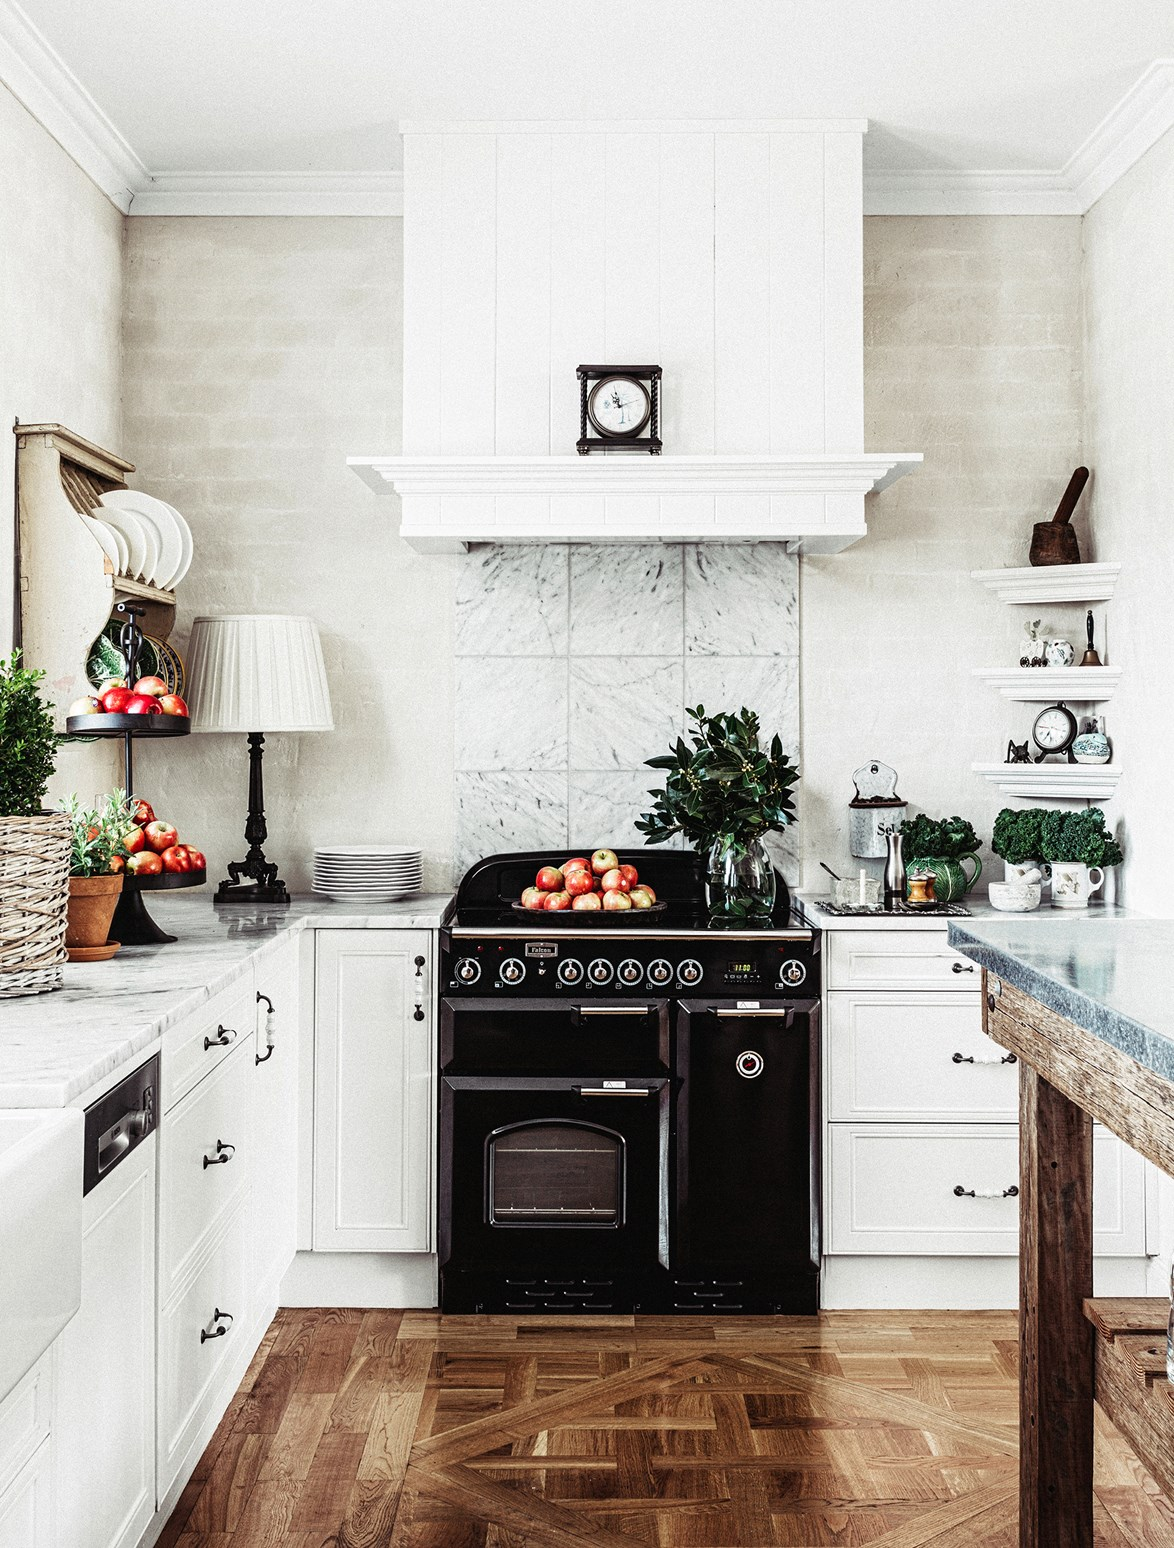 """Melissa Penfold has become an authority in interior styling, and when it came to decorating her [own home in the NSW Southern Highlands](https://www.homestolove.com.au/melissa-penfolds-french-inspired-country-house-2537